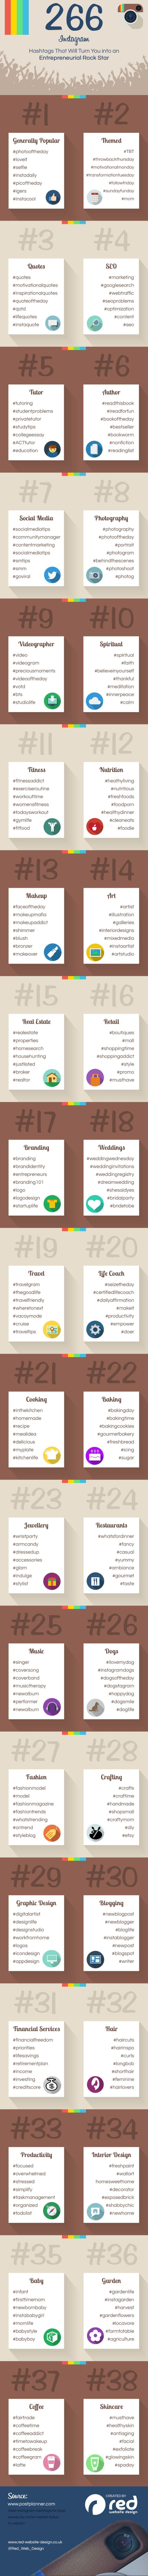 266 Instagram Hashtags That Will Turn You Into An Entrepeneurial Rock Star www.extentia.com